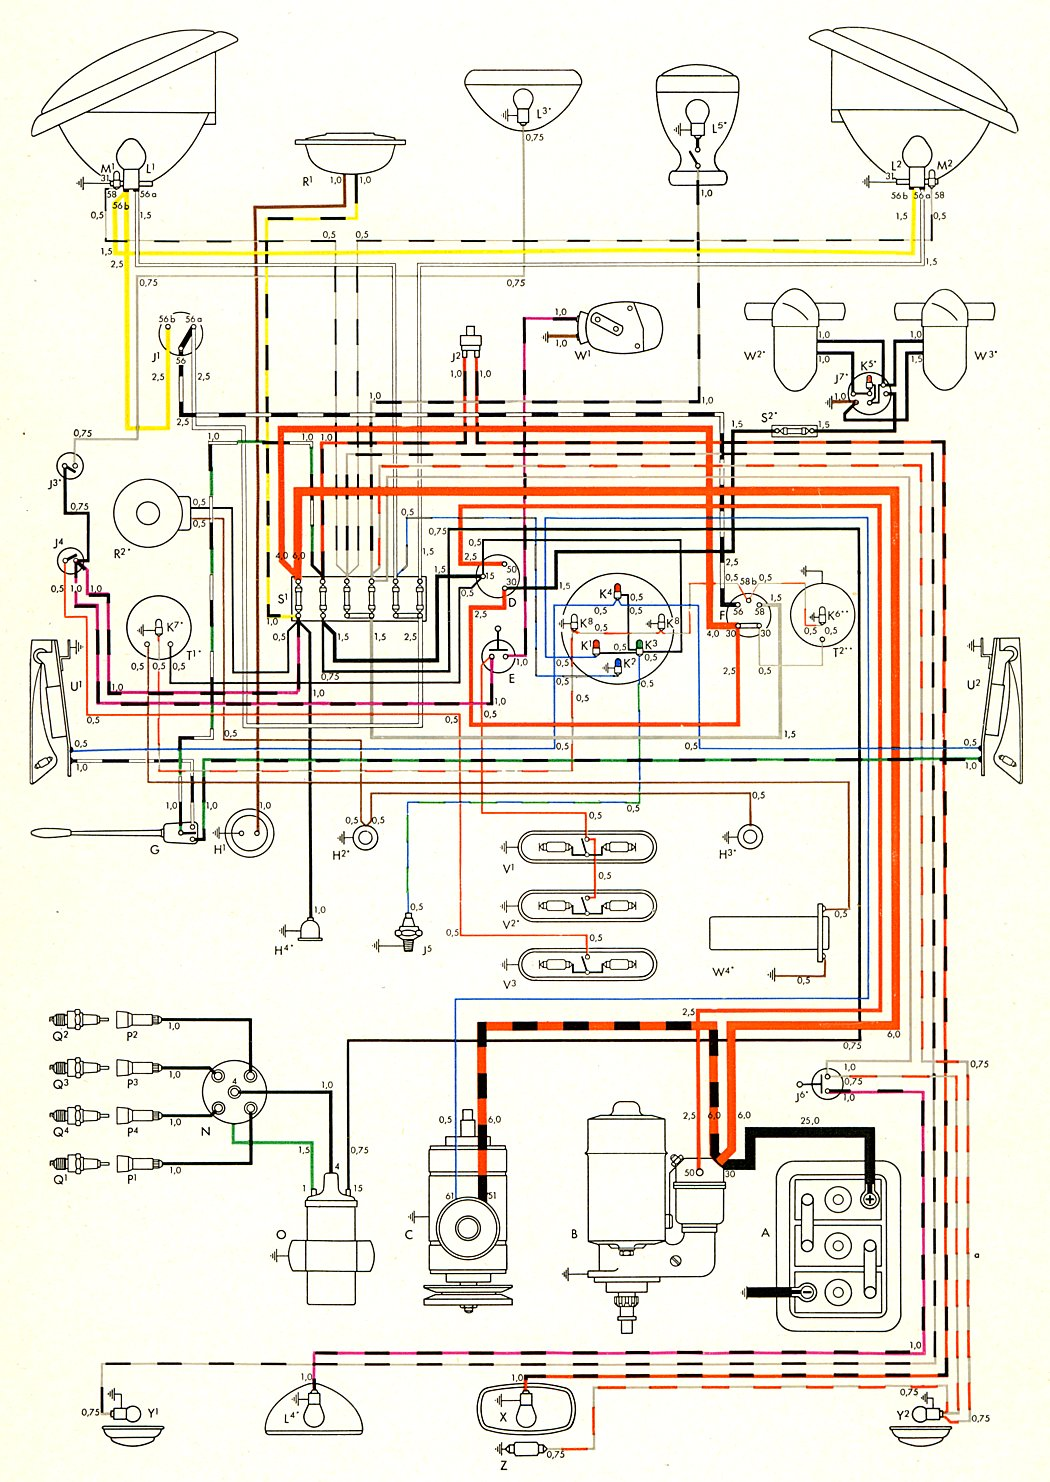 bus_nov57 1957 bus wiring diagram thegoldenbug com vw turn signal wiring diagram at creativeand.co